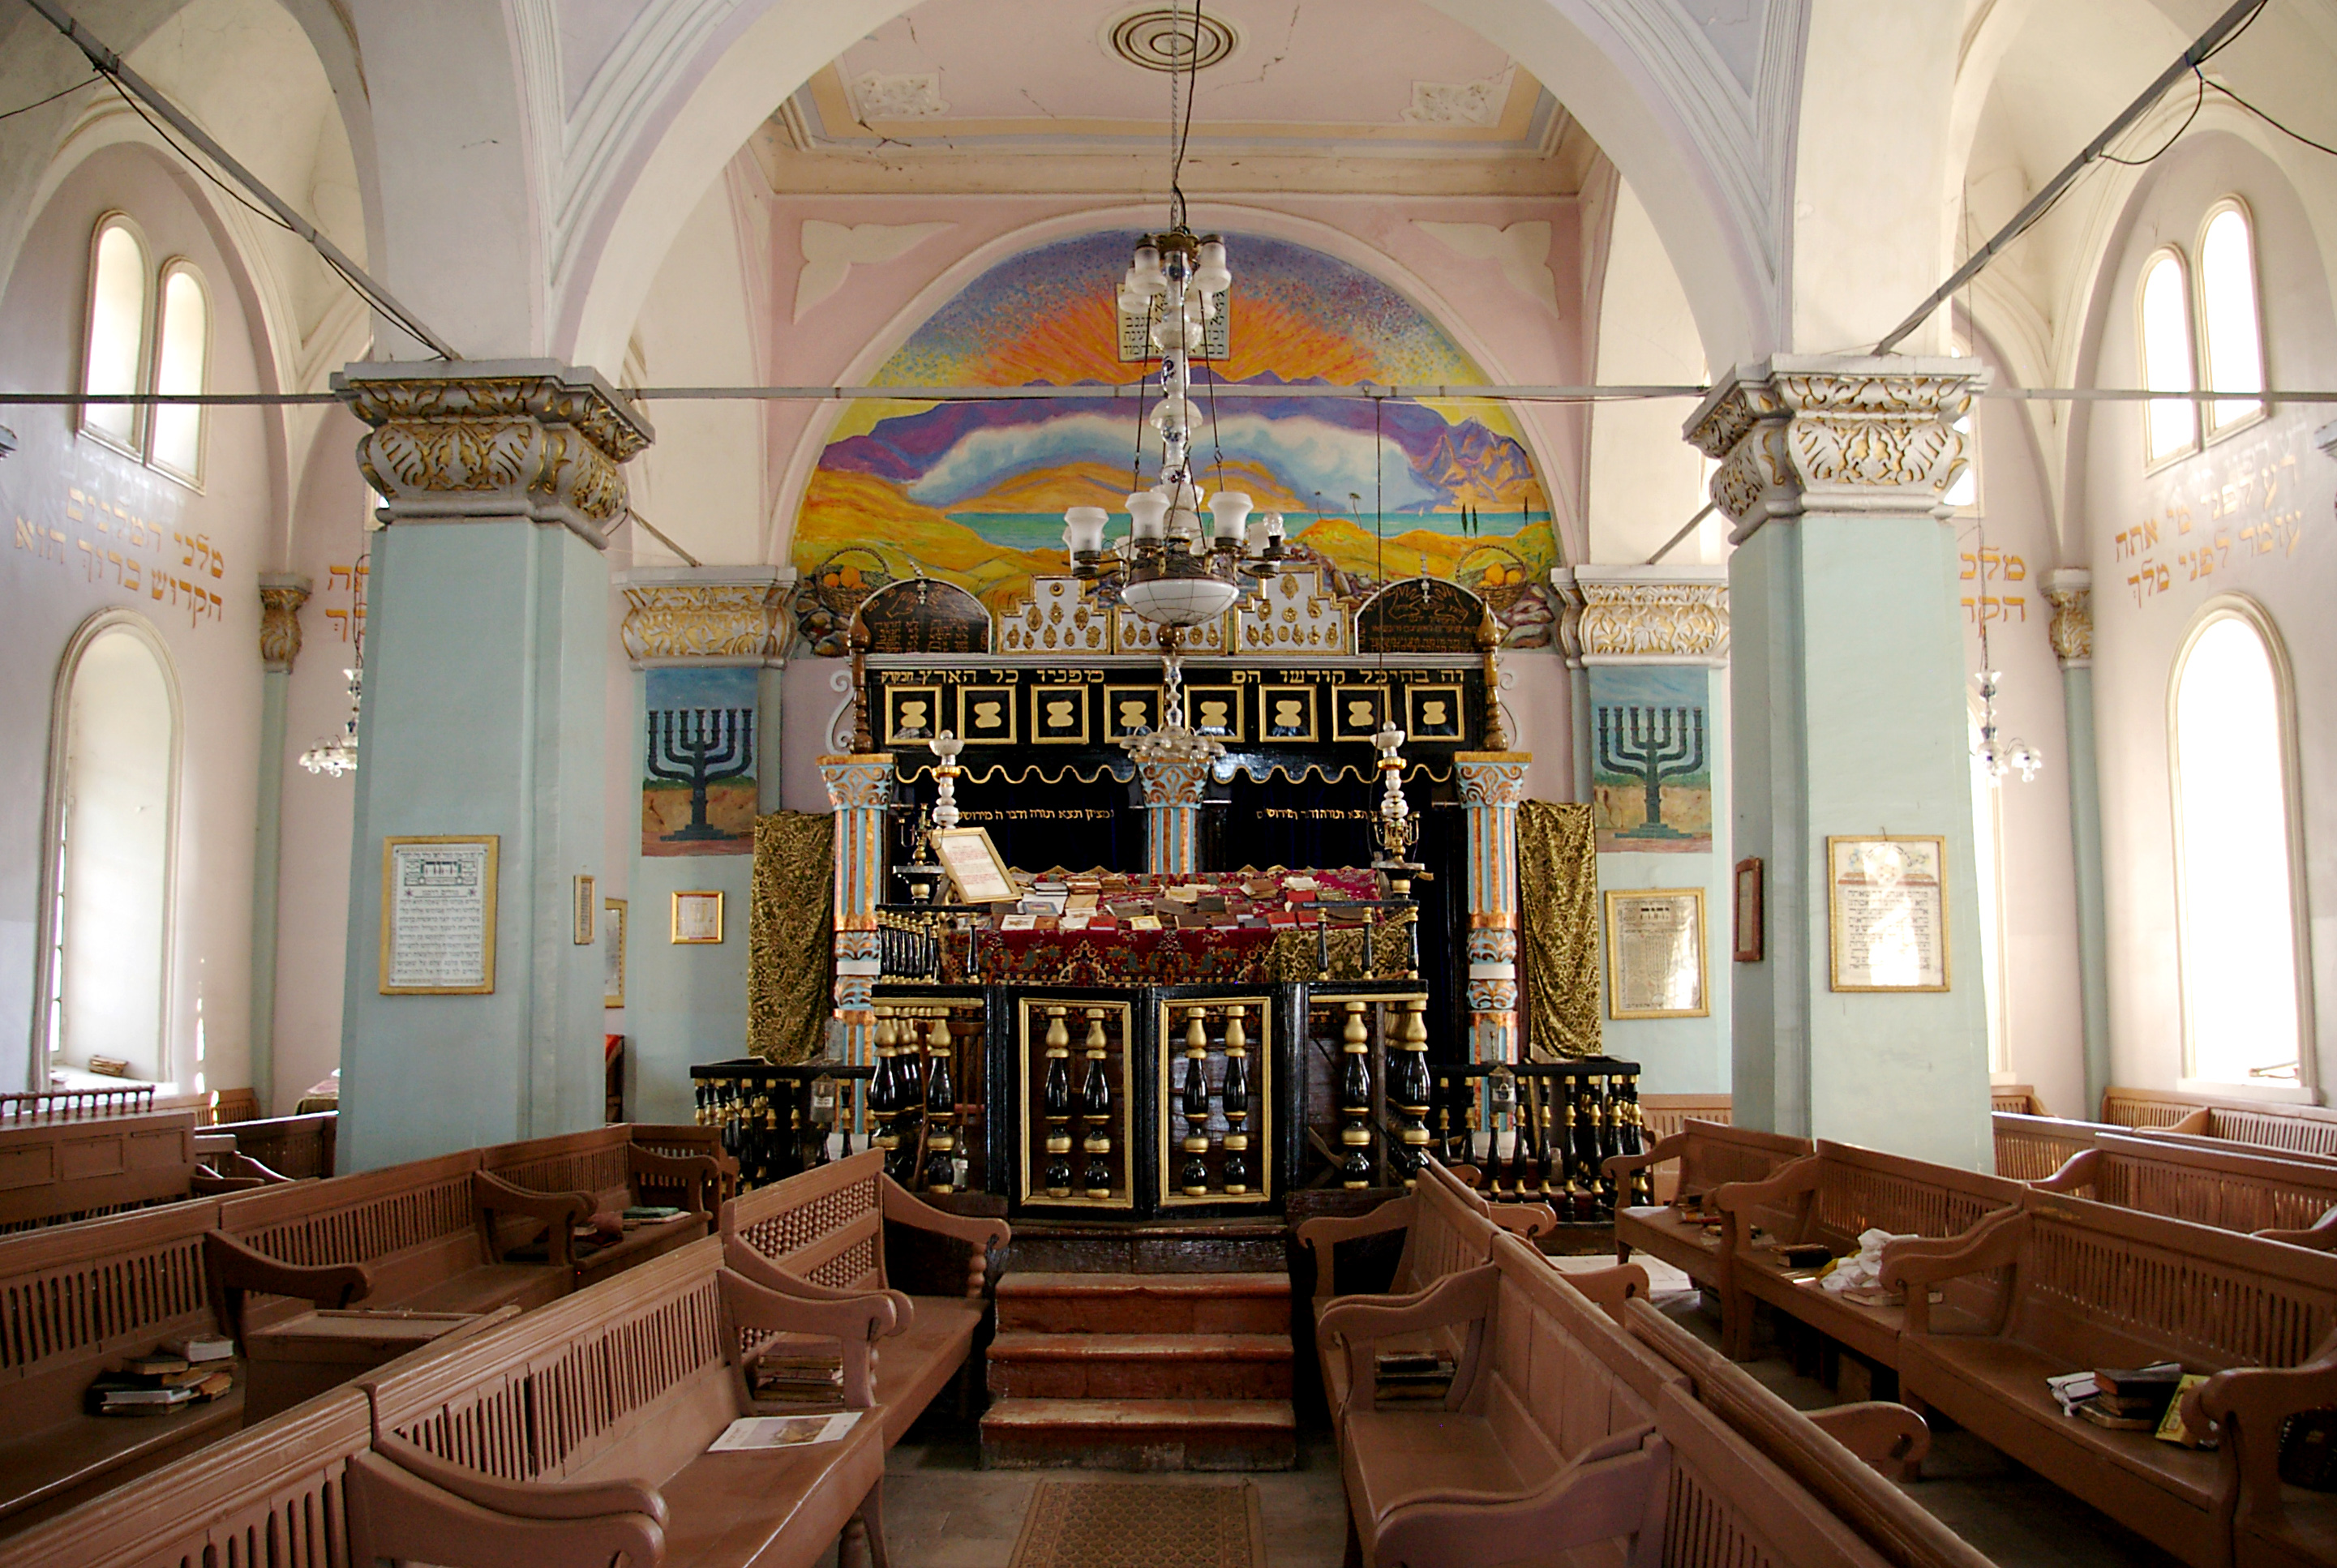 Surami Synagogue is a synagogue in Surami, Georgia.